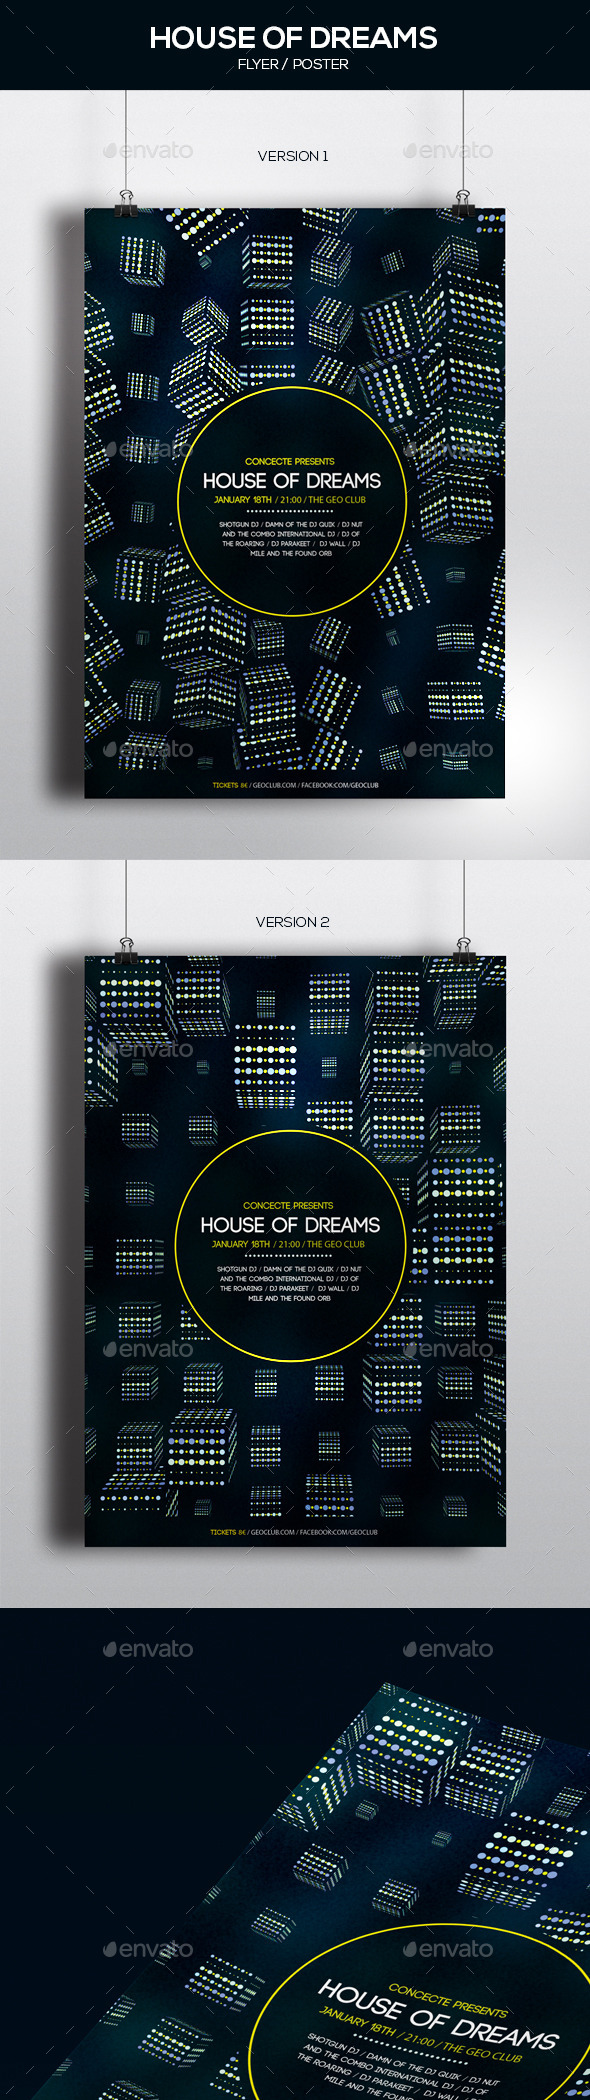 GraphicRiver House of Dreams Party Poster 2 Versions 10012135